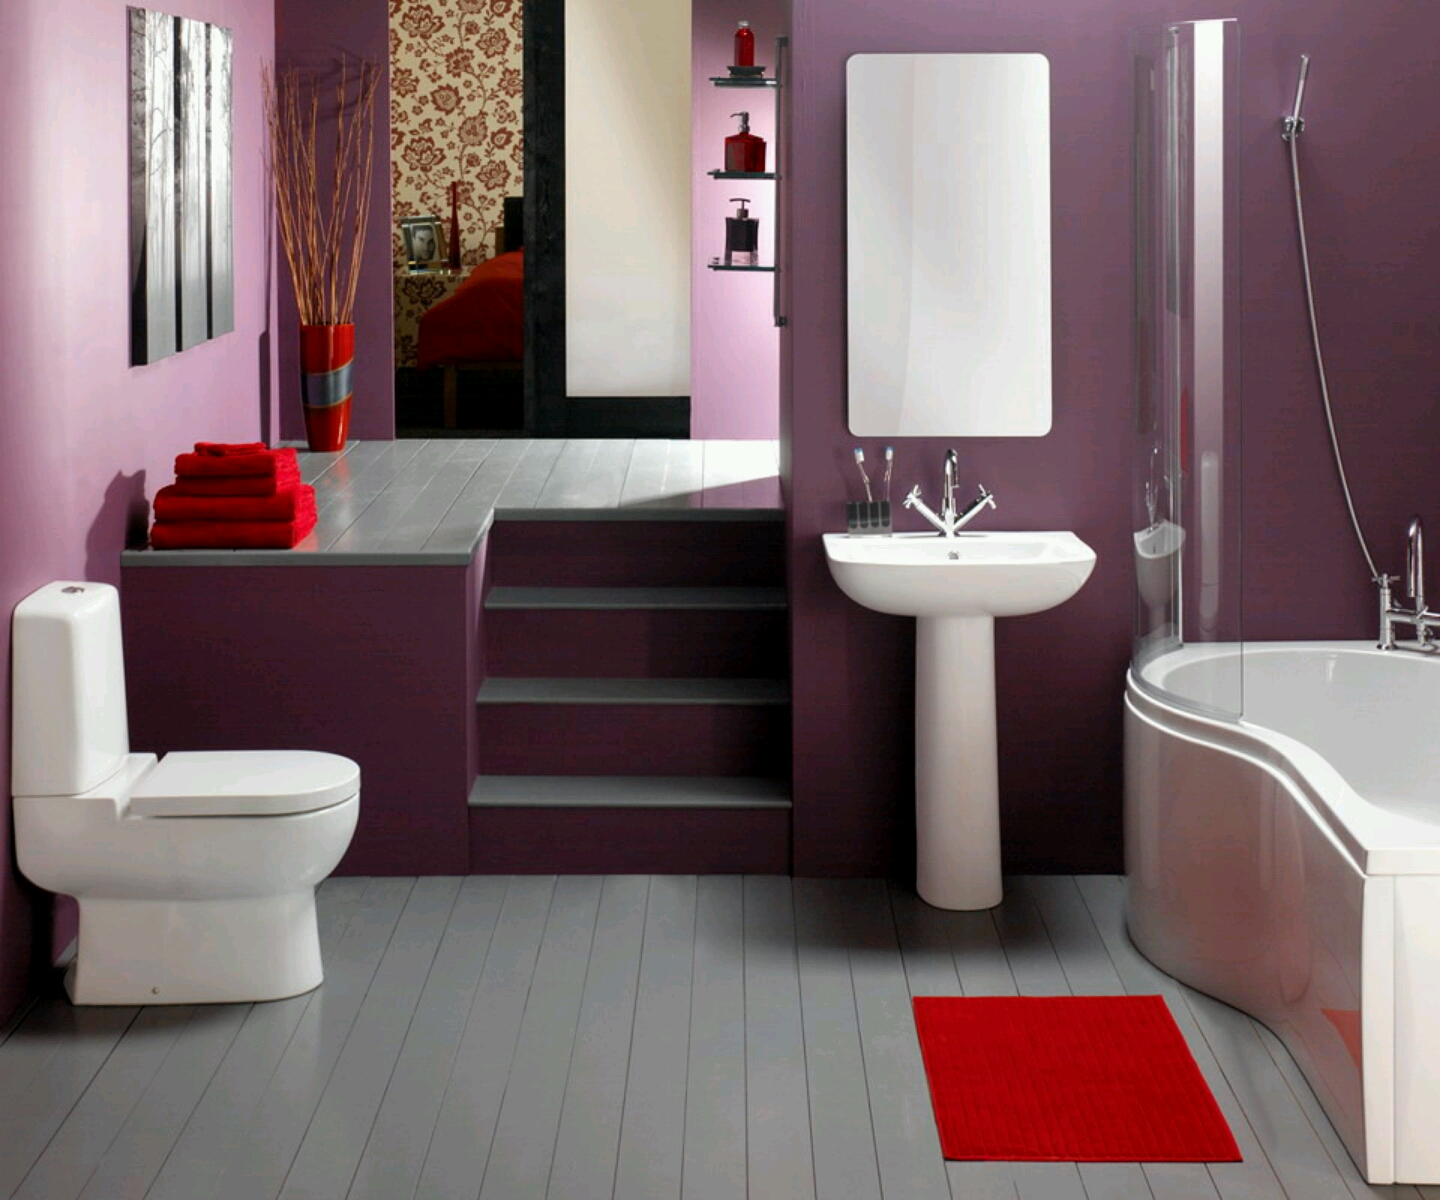 New home designs latest luxury modern bathrooms designs decoration ideas Beautiful modern bathroom design